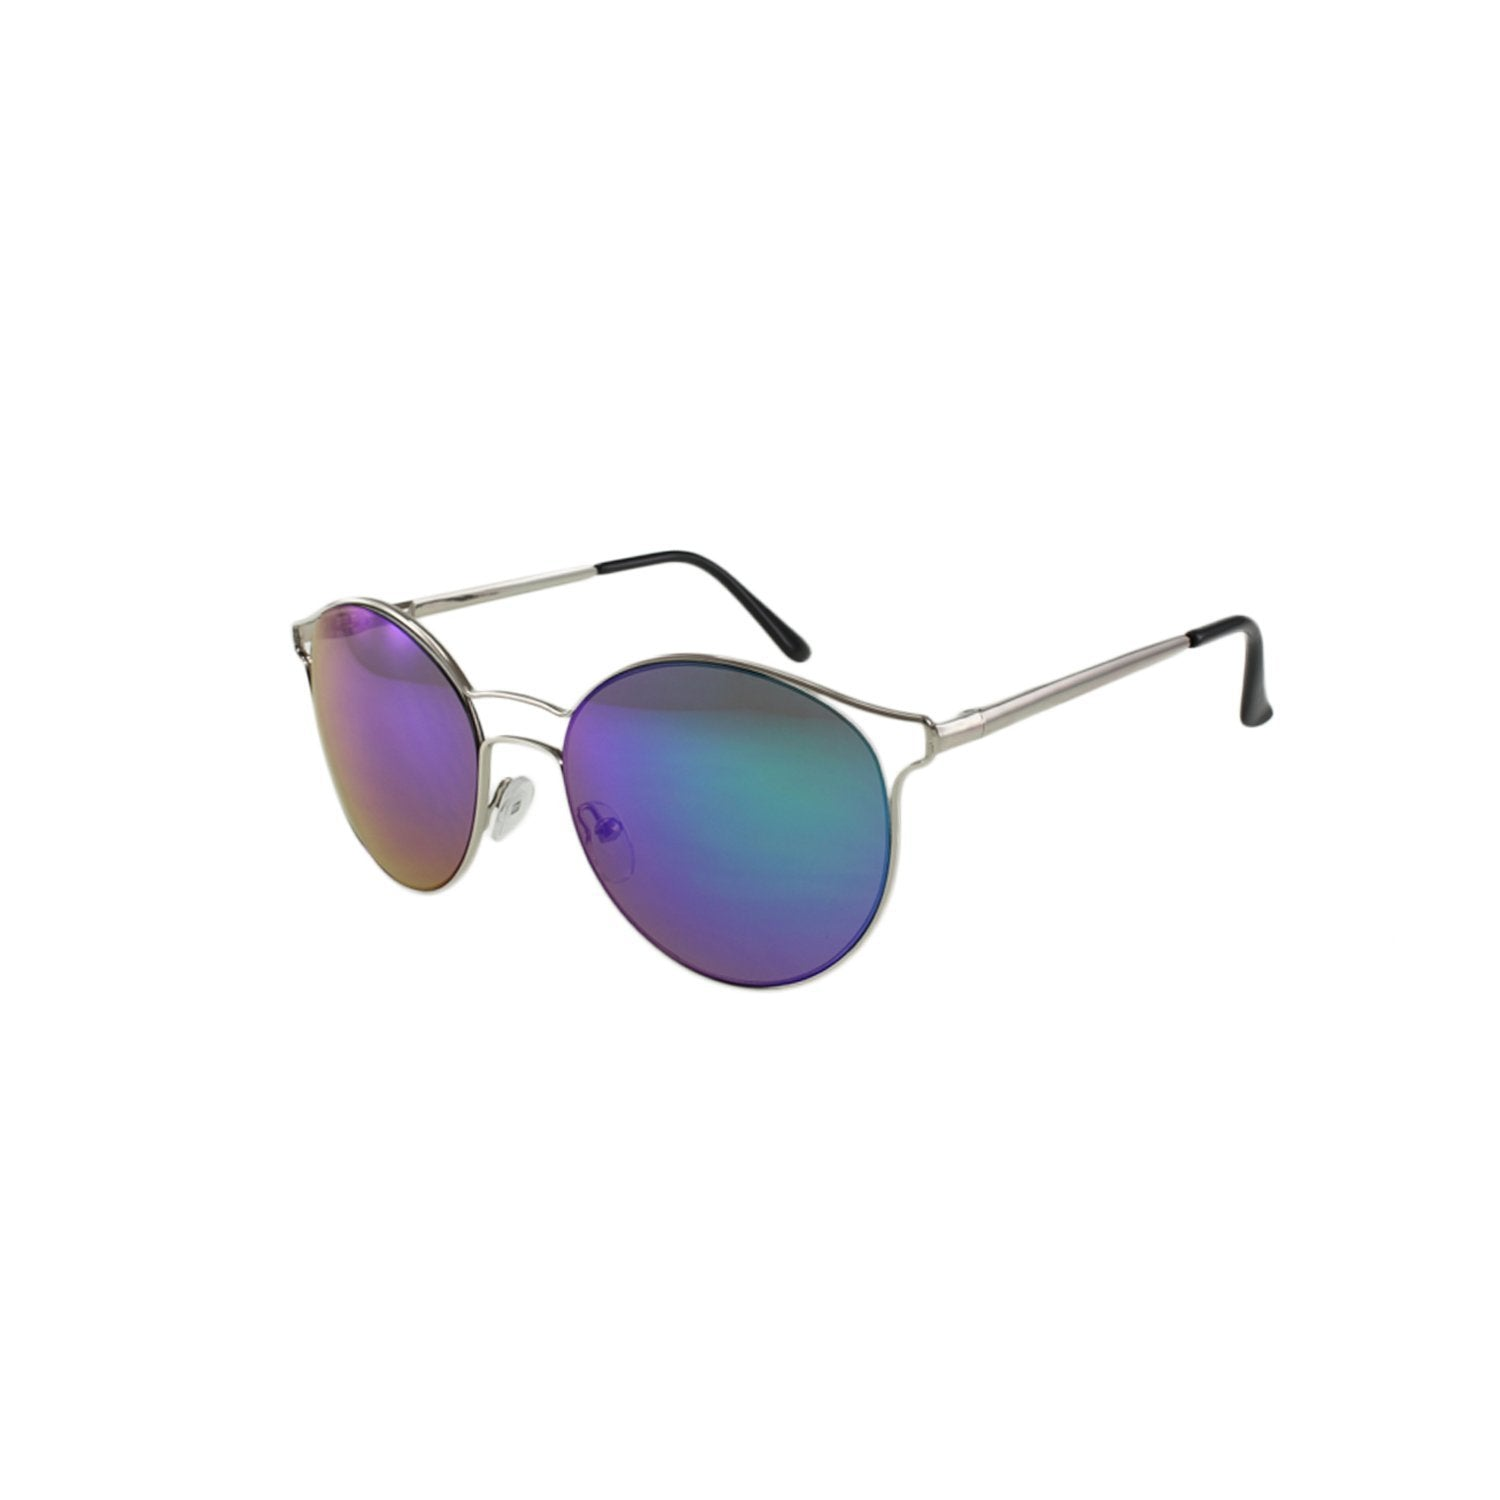 Jase New York Collins Sunglasses in Green